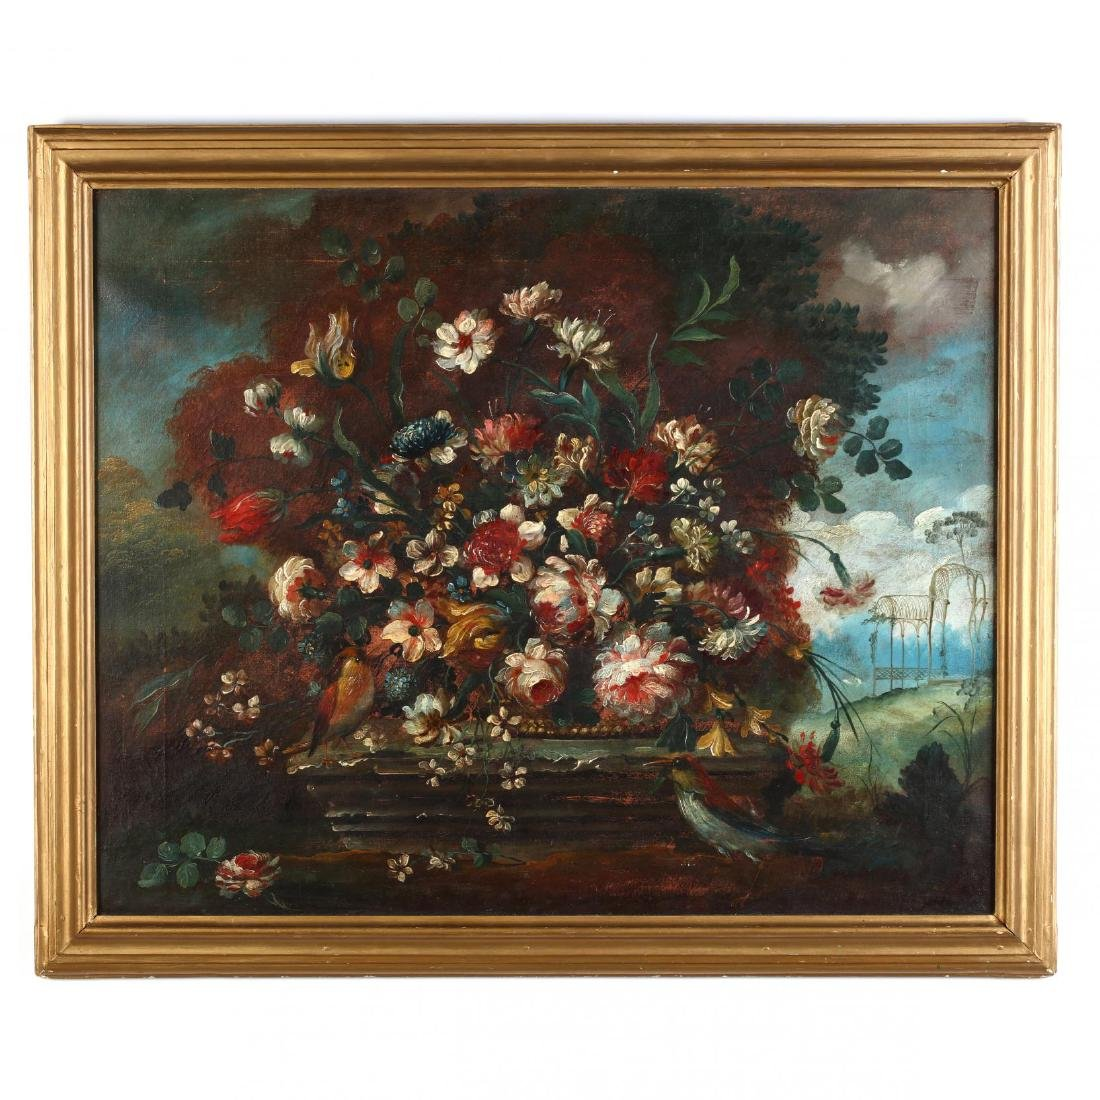 A Large Floral Still Life with Birds in the French